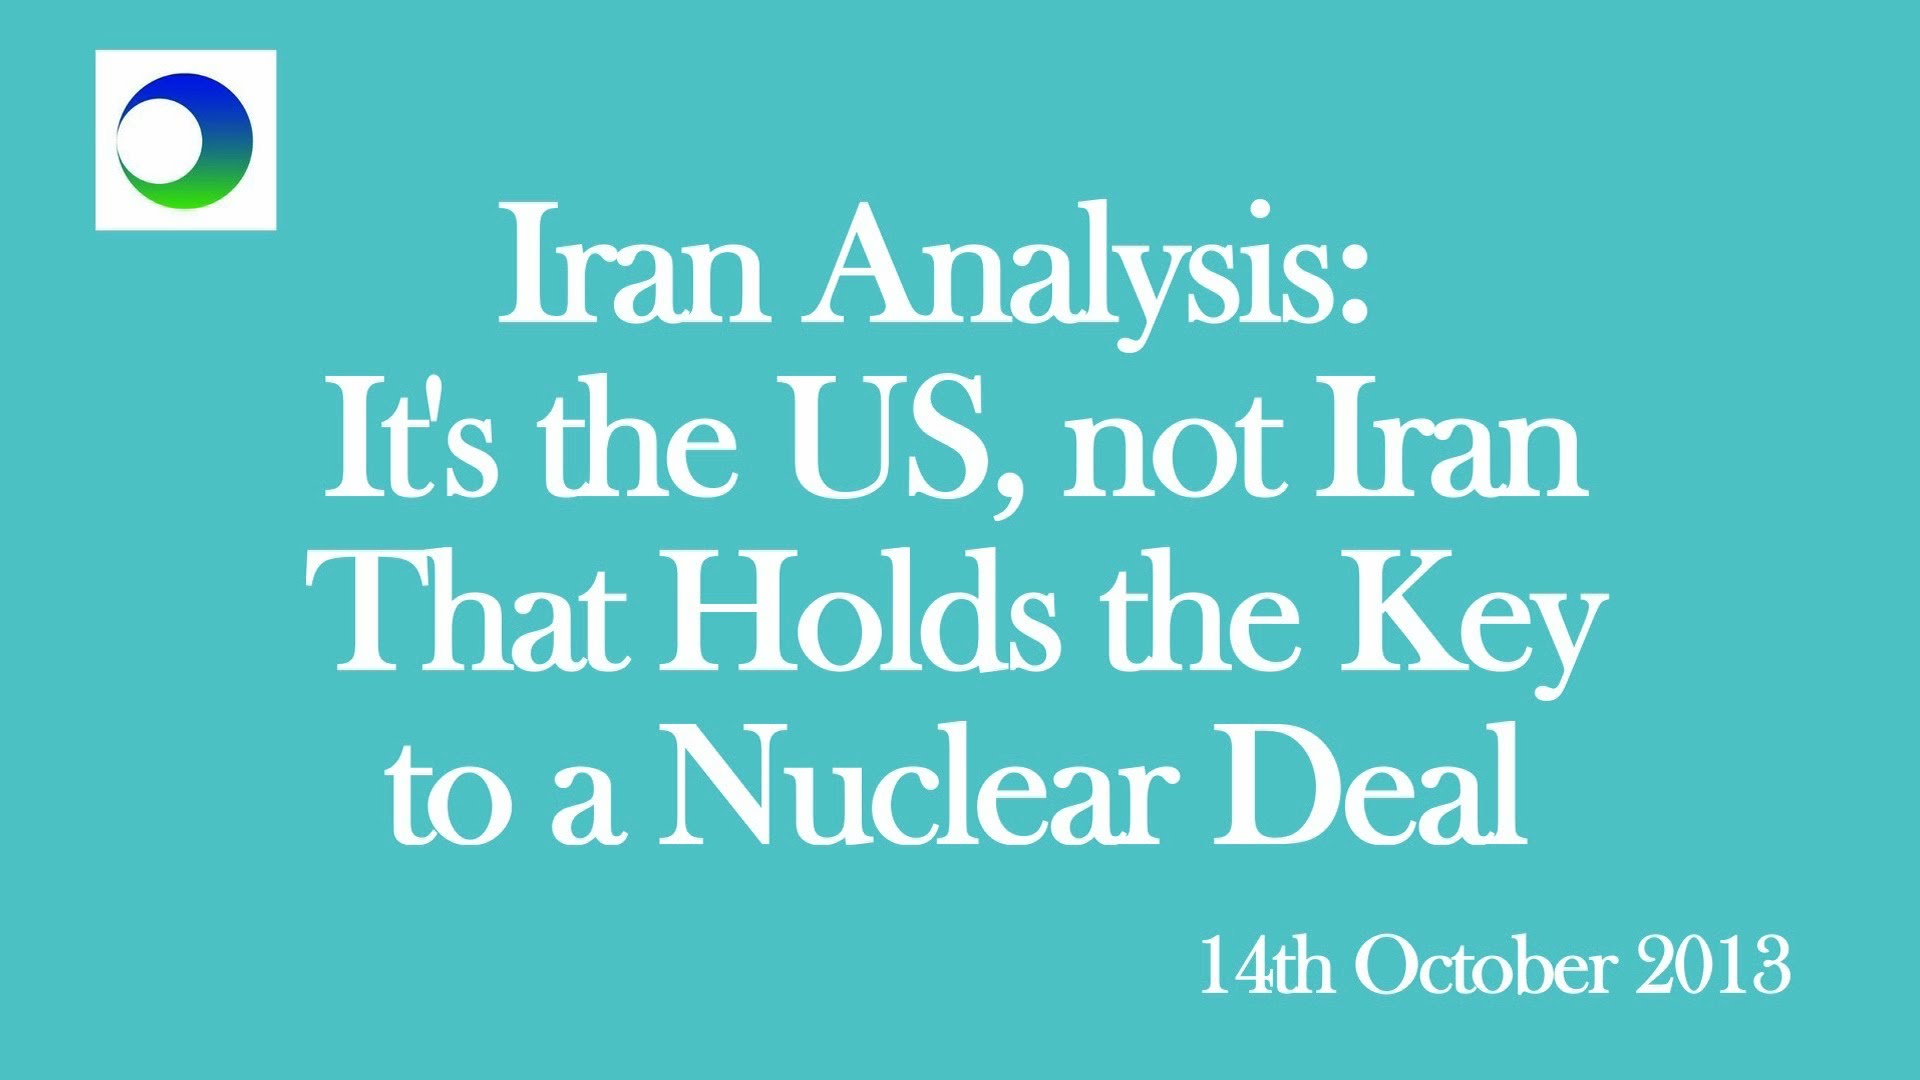 Why the US Holds the Keys to a Nuclear Deal